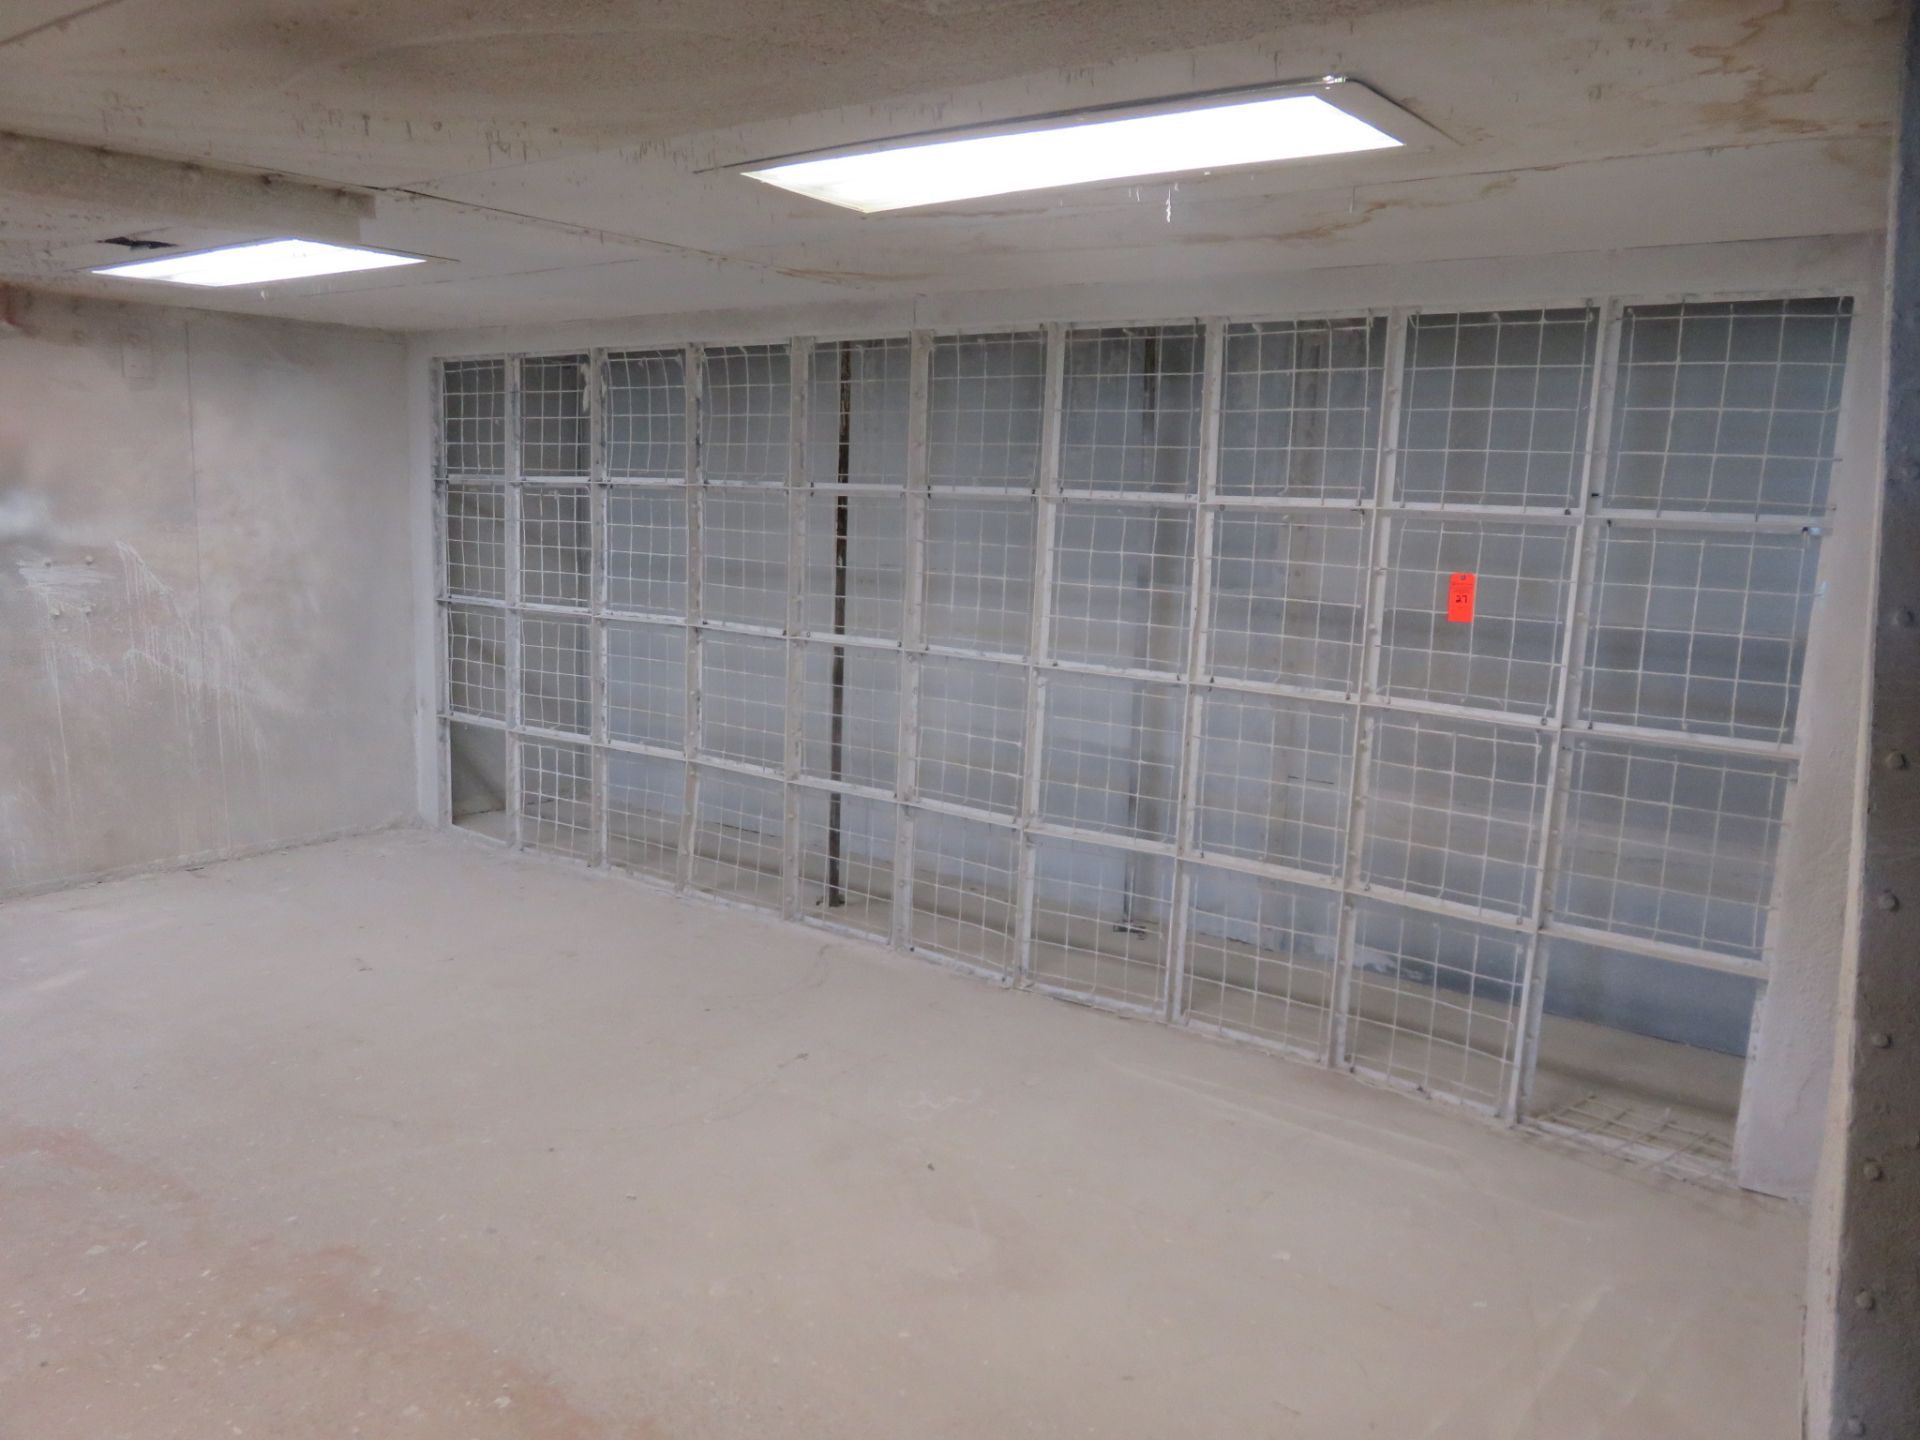 Global Finishing Systems Paint Booth approx 18' x 9' x 7' with a 6' Overhang